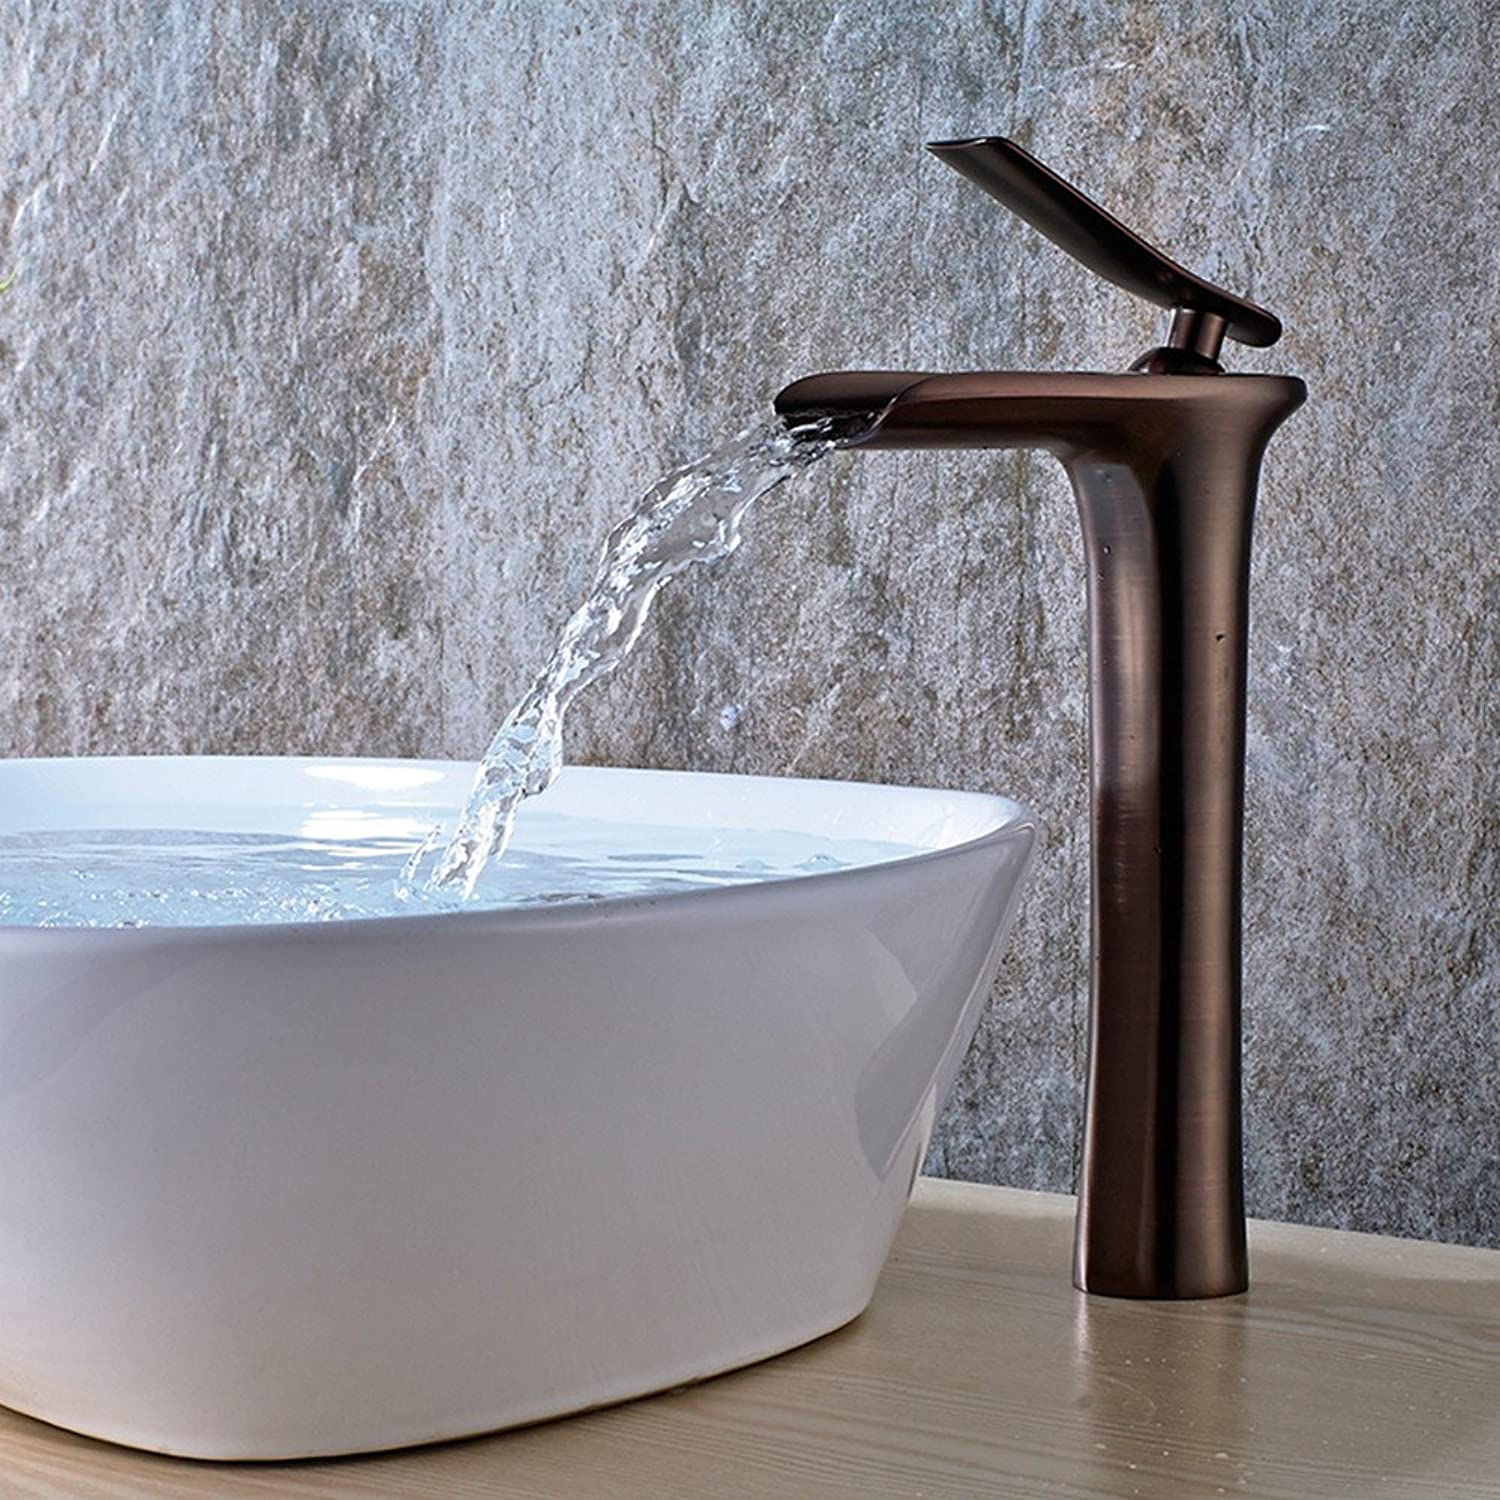 LHbox Basin Mixer Tap Bathroom Sink Faucet Waterfall basin faucet hot and cold full copper surface basin basin art basin faucet,H